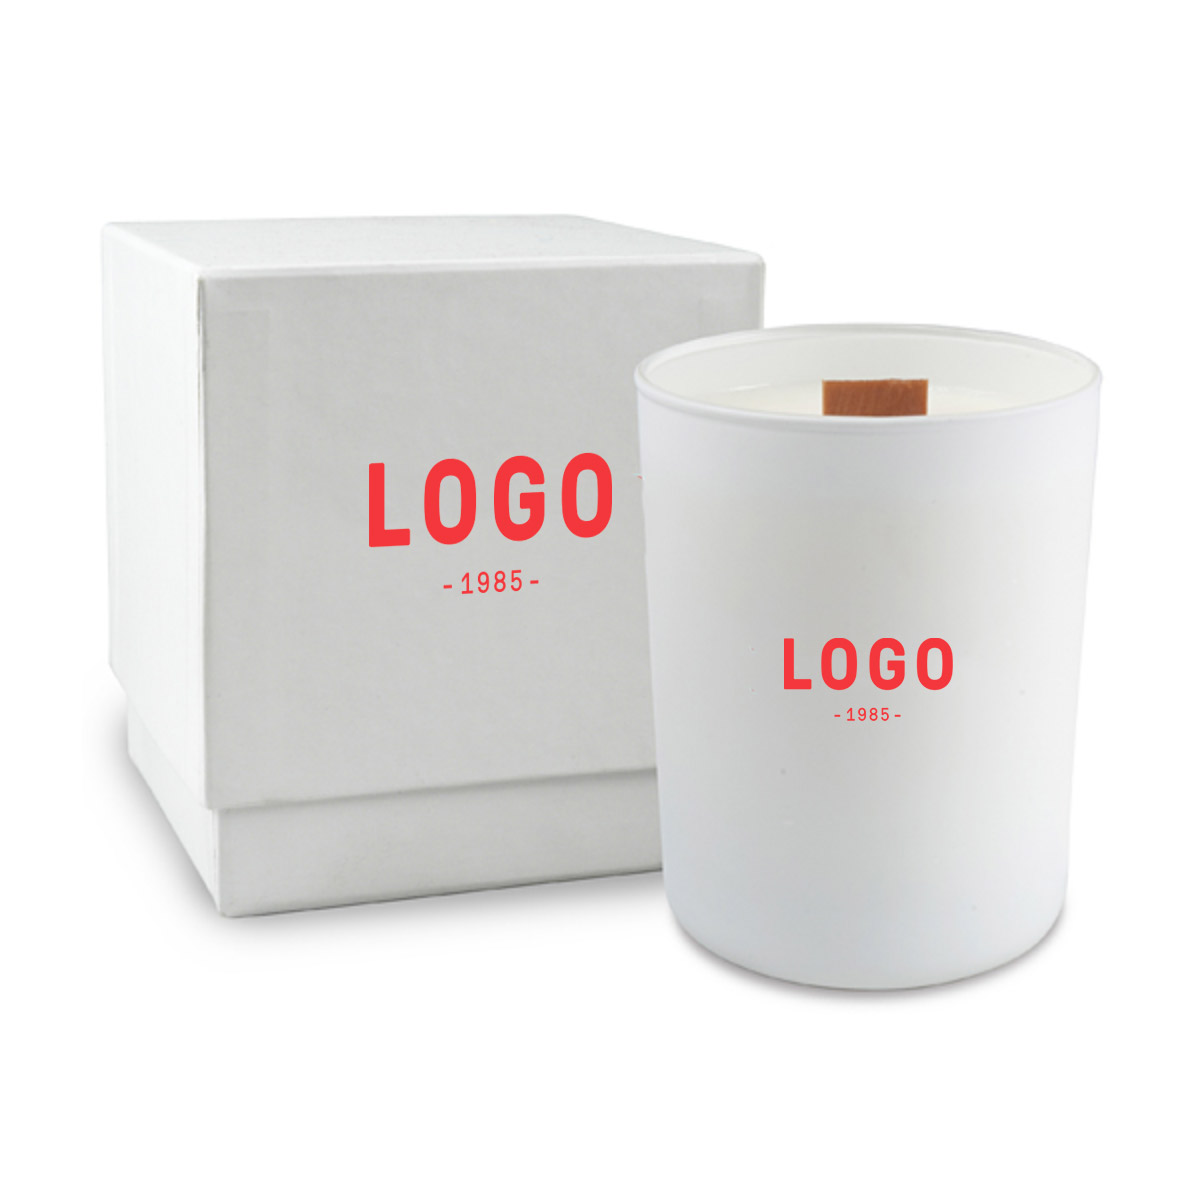 130245 nouveau soy candle one color imprint on candle and box